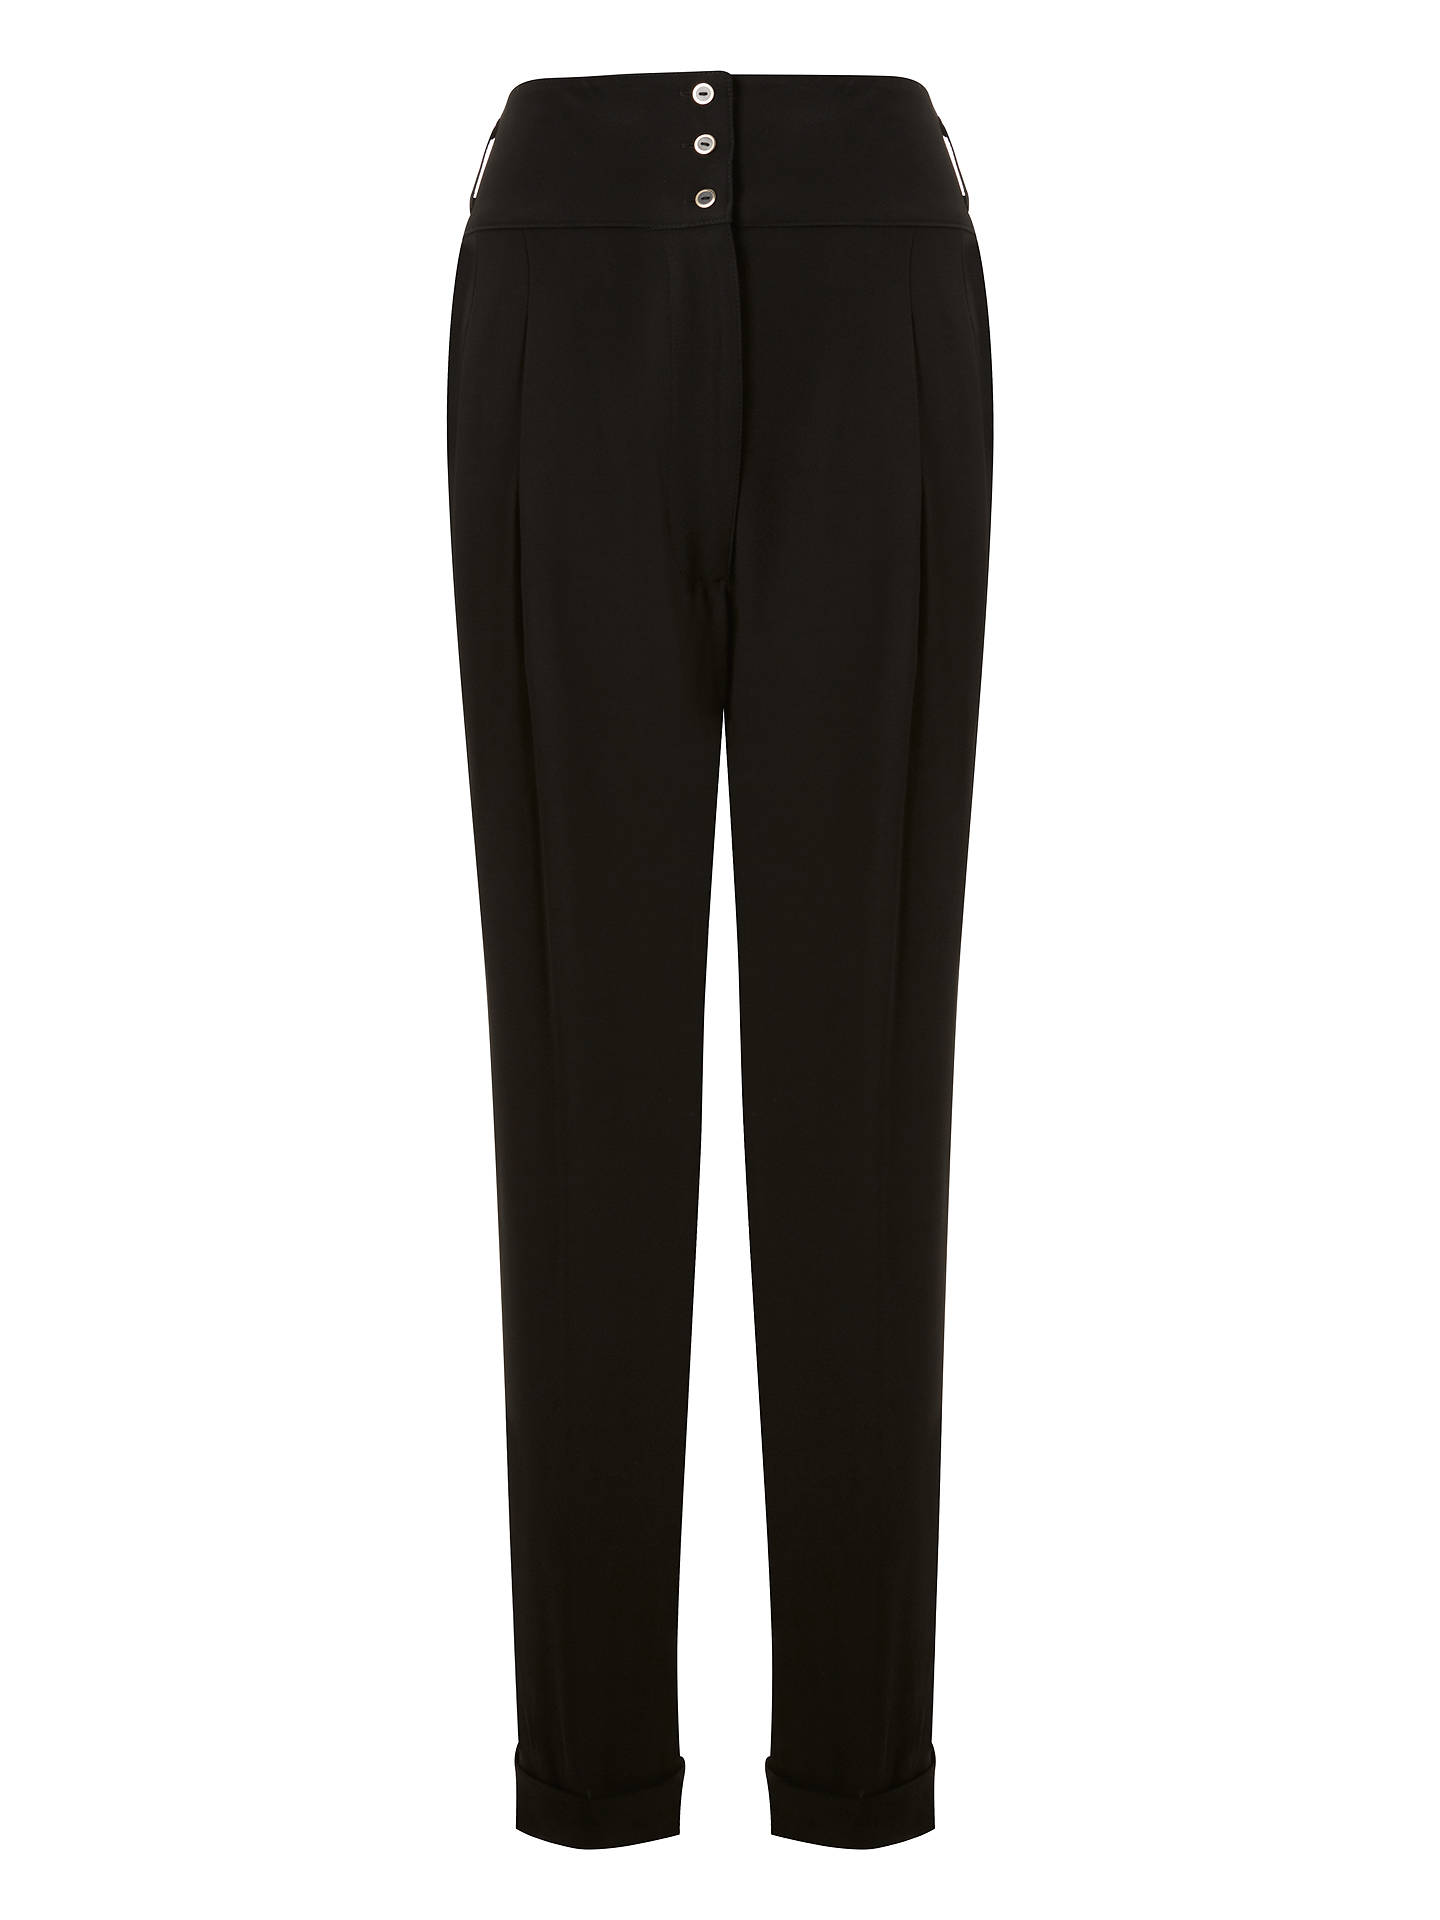 BuySomerset by Alice Temperley Turn Up High Waist Trousers, Black, 8 Online at johnlewis.com